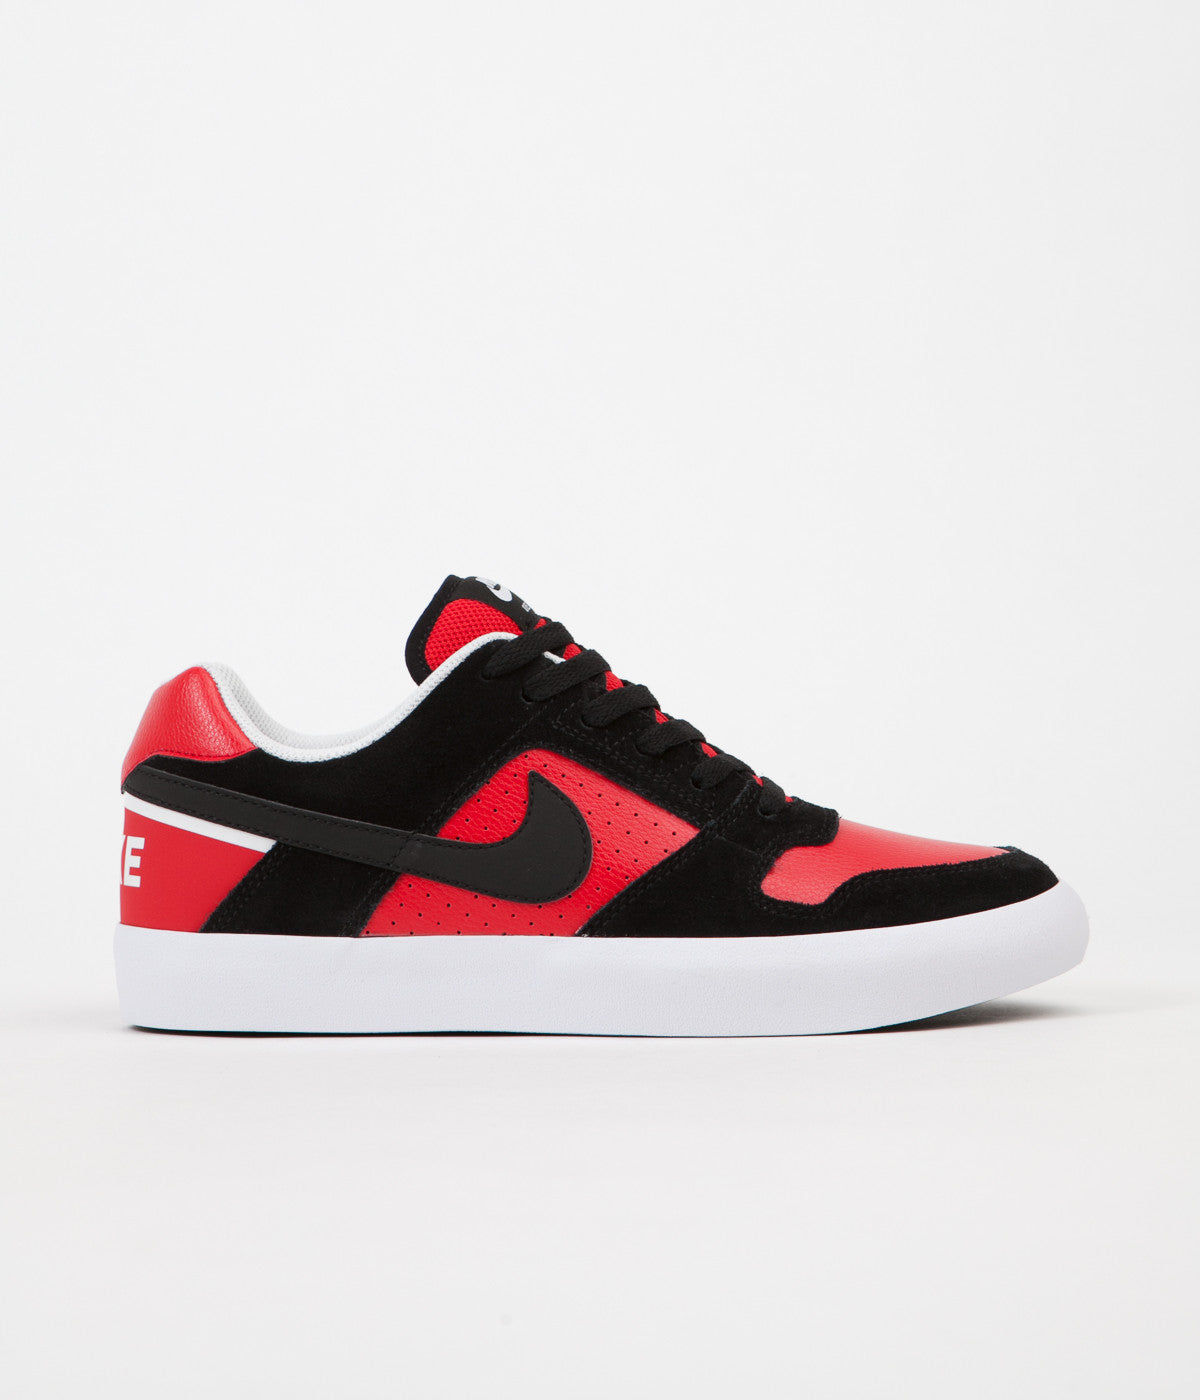 Nike SB Delta Force Vulc Shoes - Black / Black - University Red - Whit | Flatspot